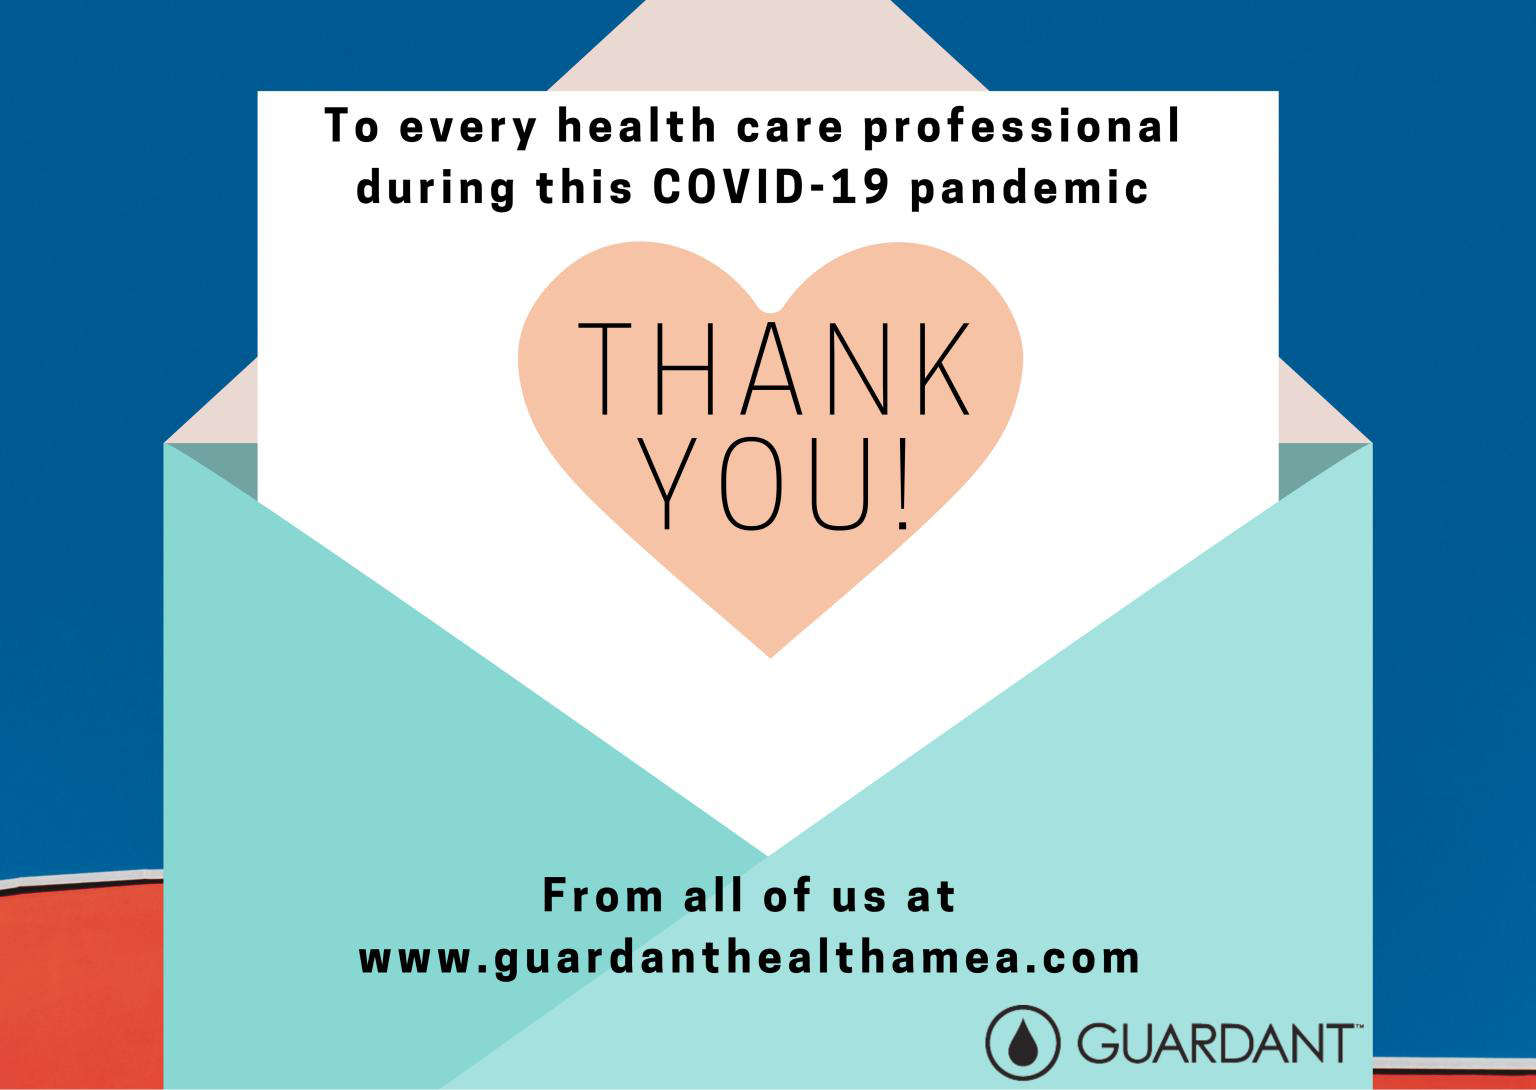 A big heartfelt Thank You to all health care professionals during this COVID-19 pandemic